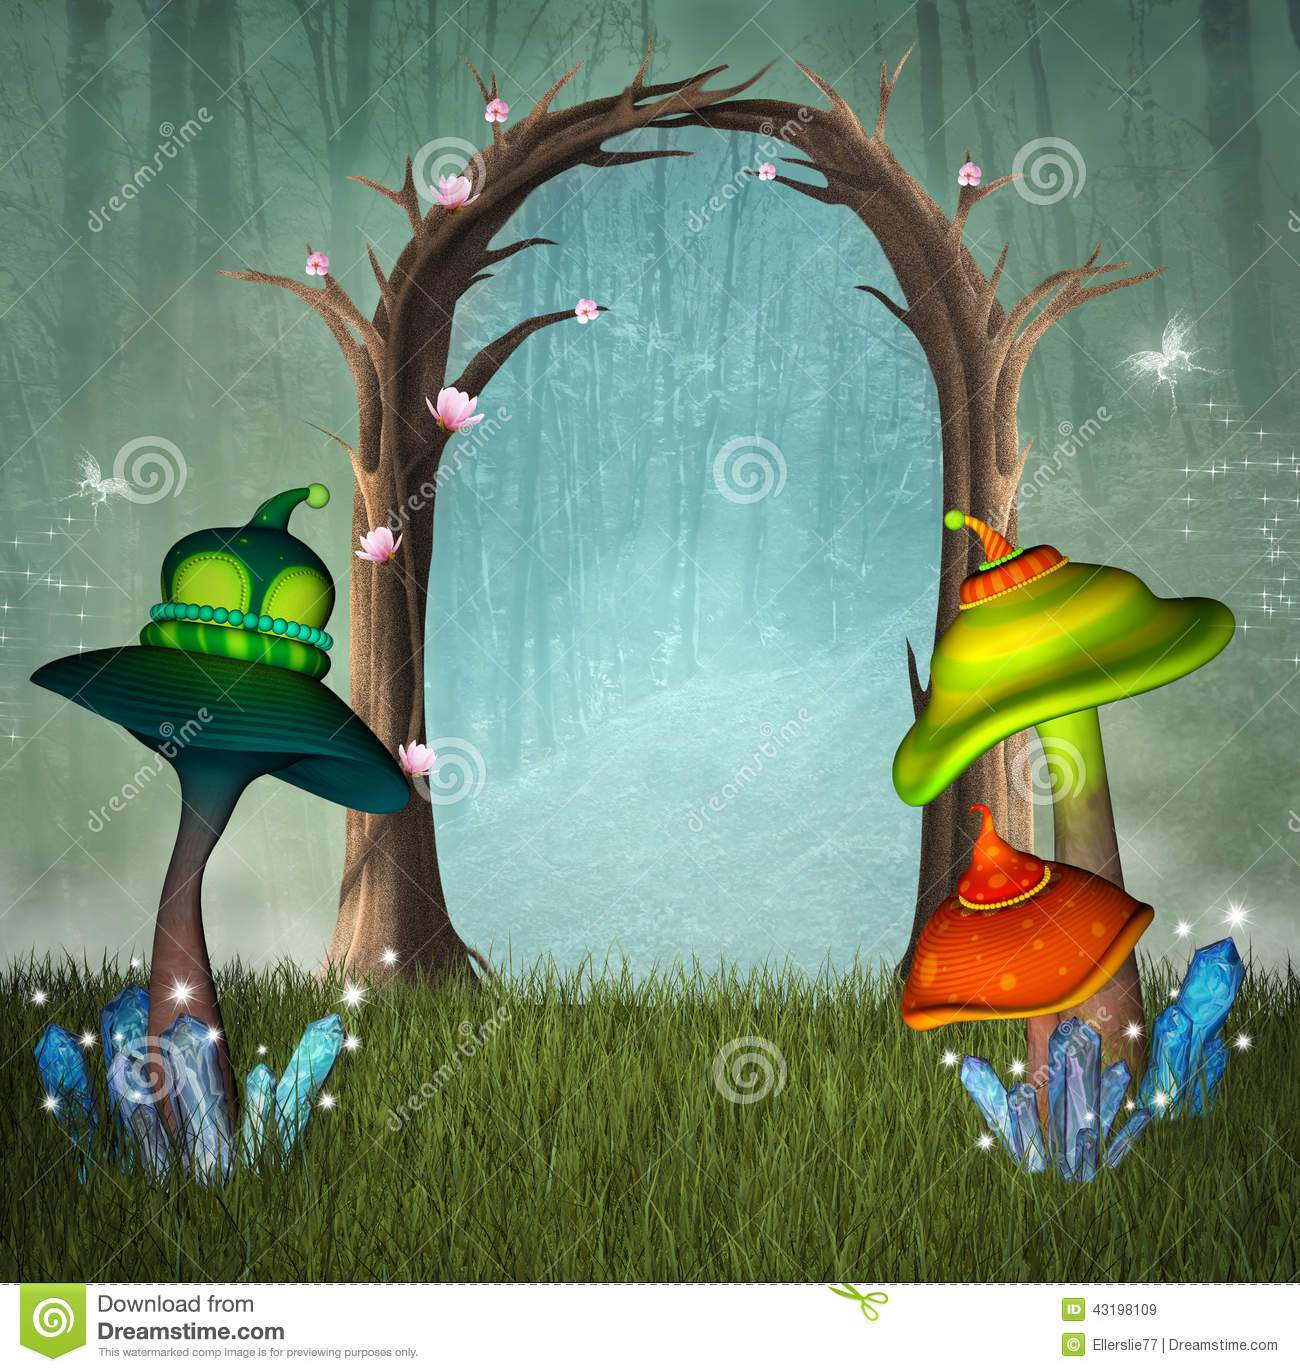 Enchanted forest clipart 8 » Clipart Portal.